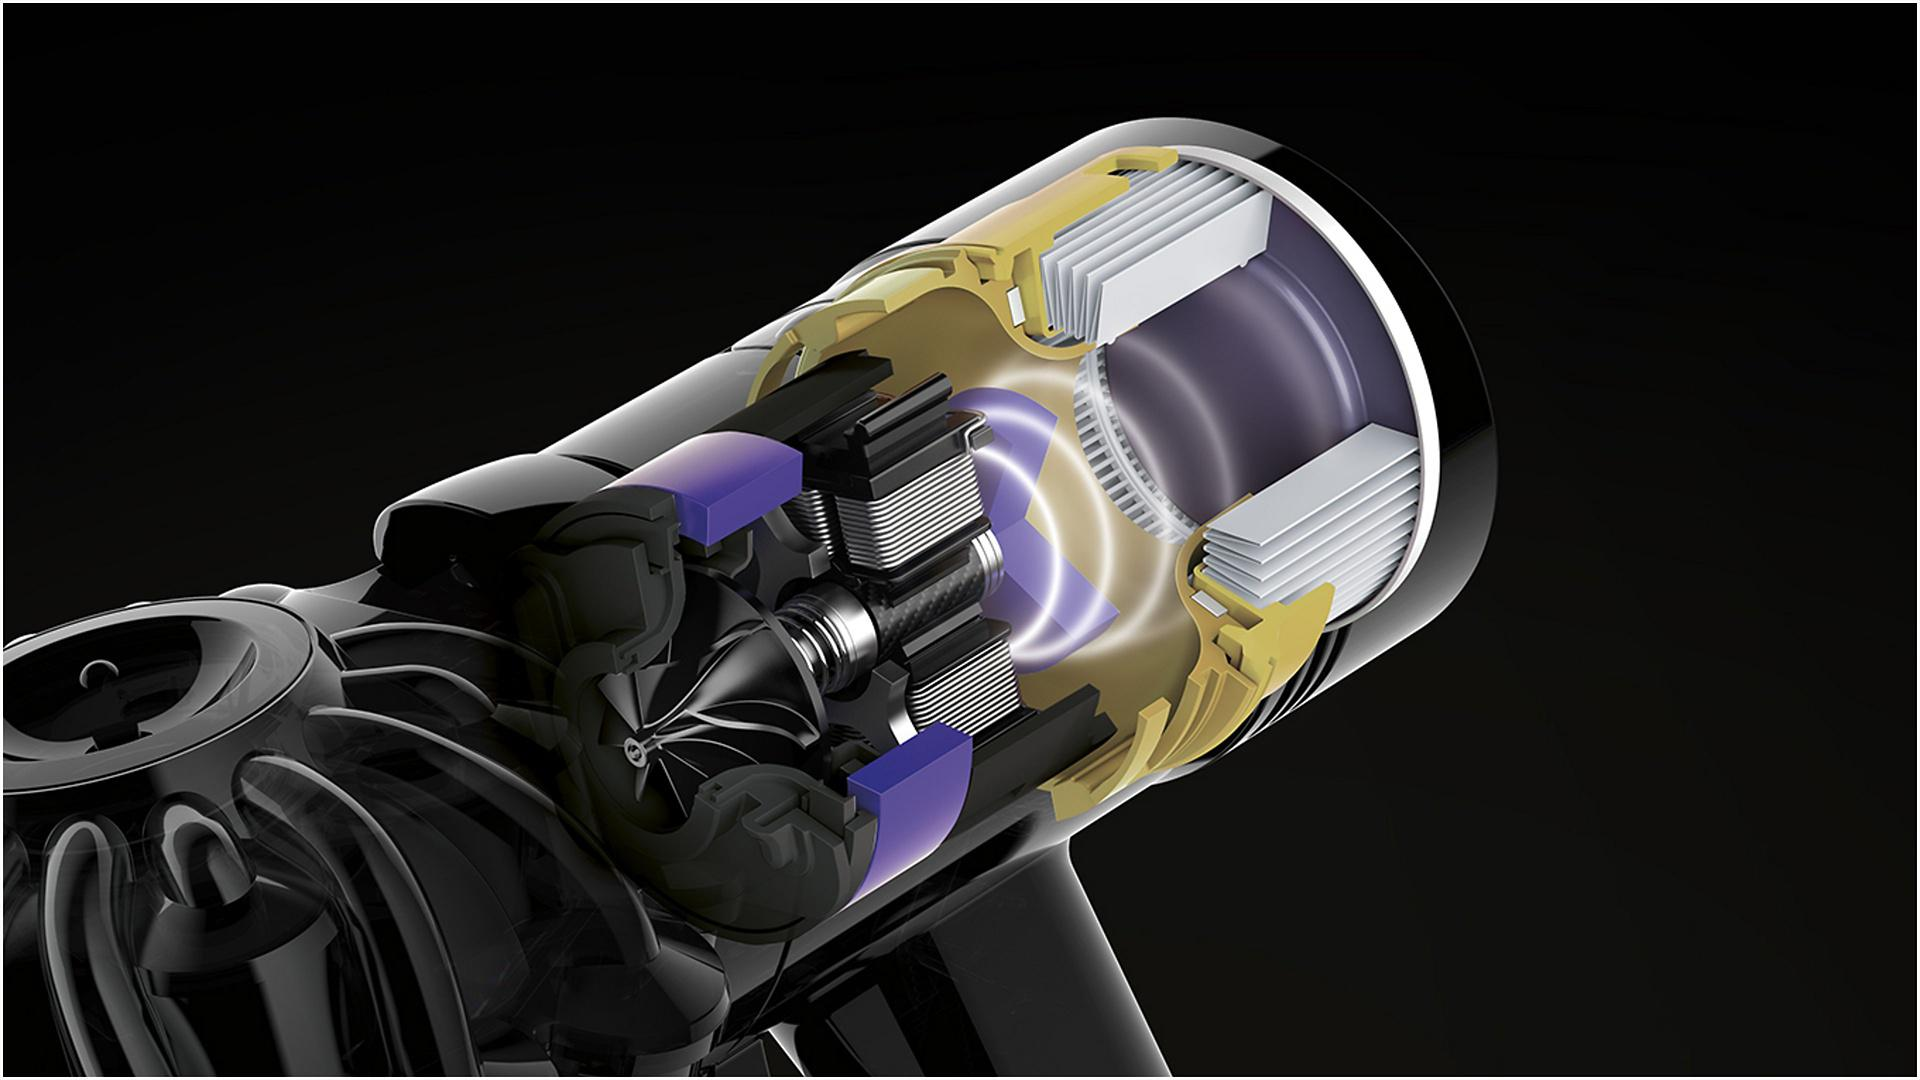 Xray of inner workings of Dyson V7 motor and streamlined airways